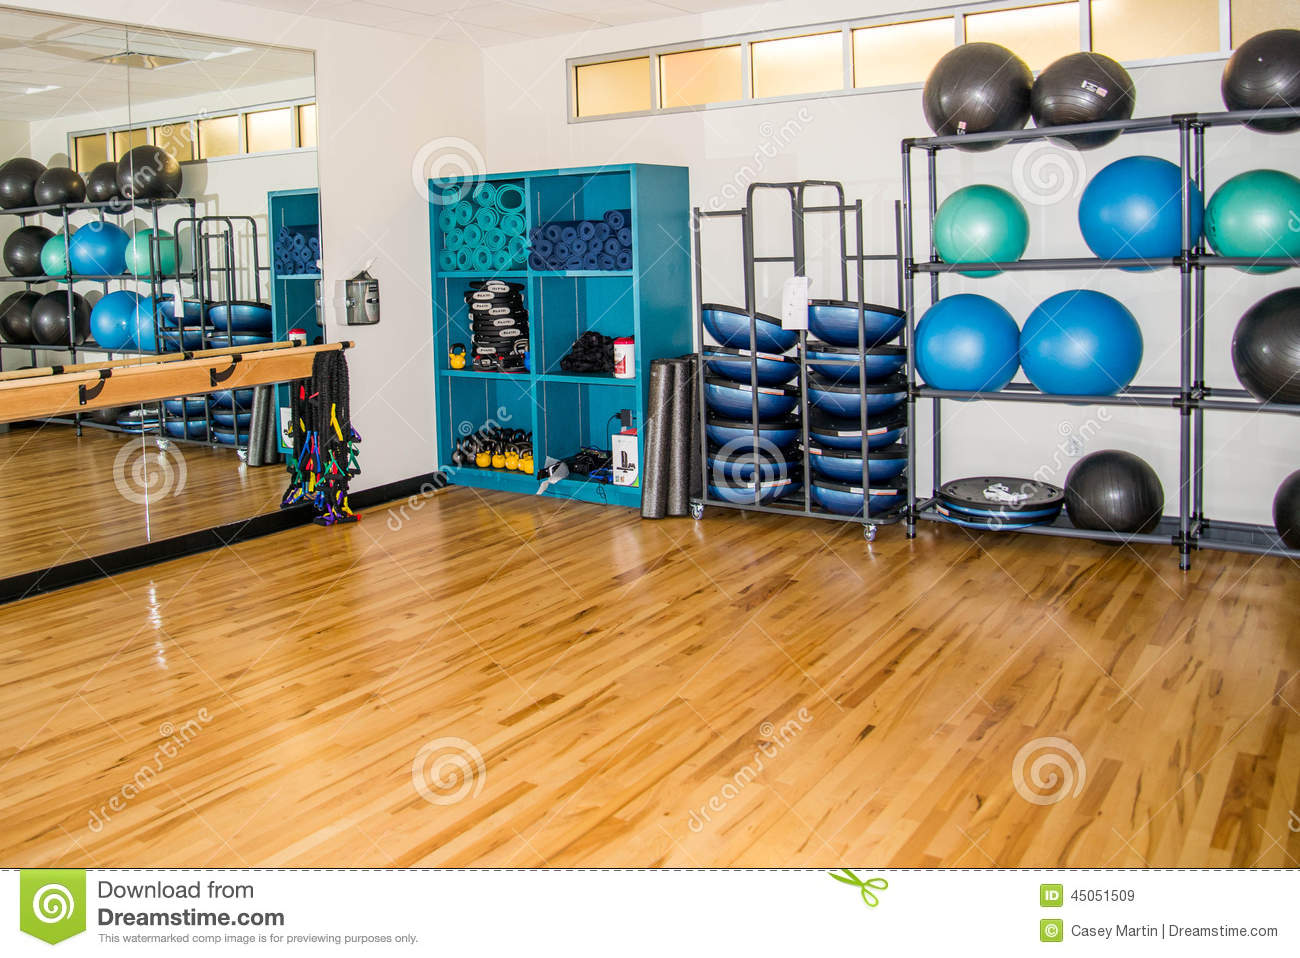 Group exercise room with workout equipment stock photo